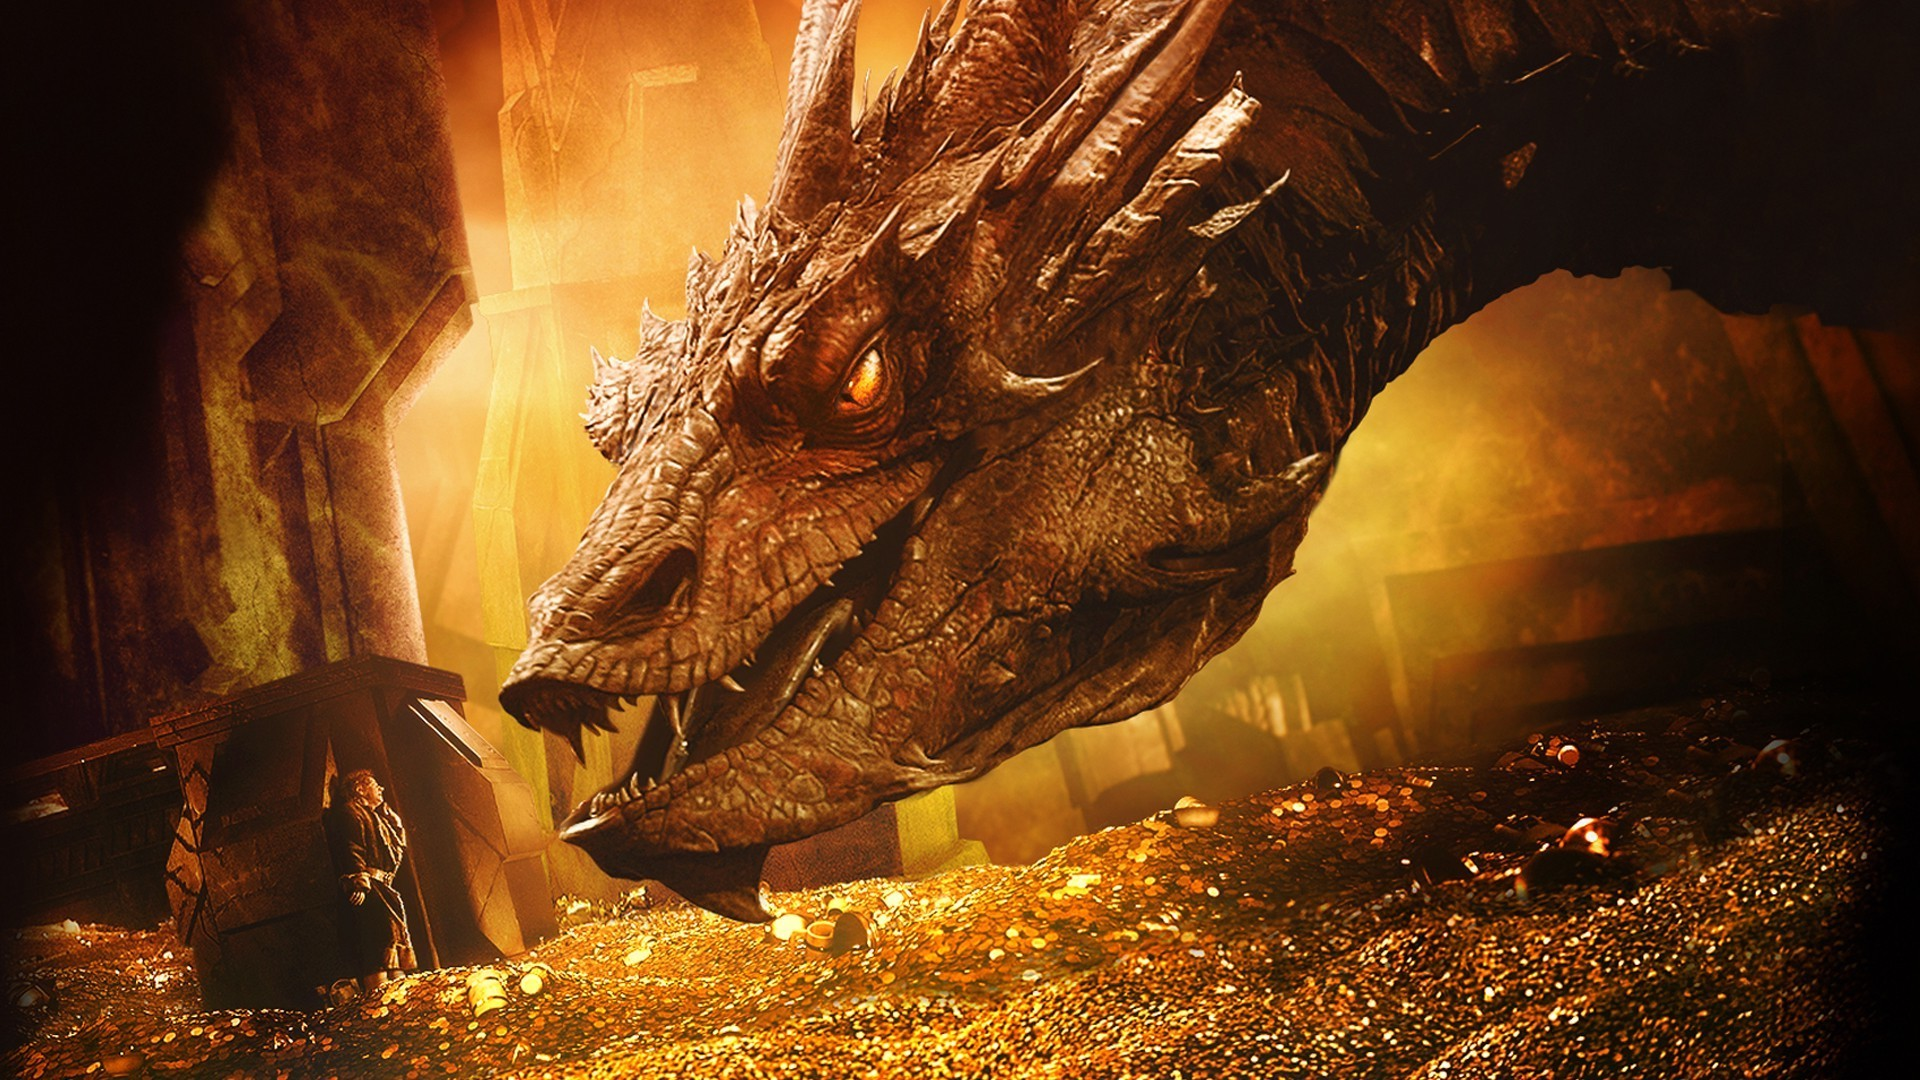 Smaug Wallpaper HD (72+ images)